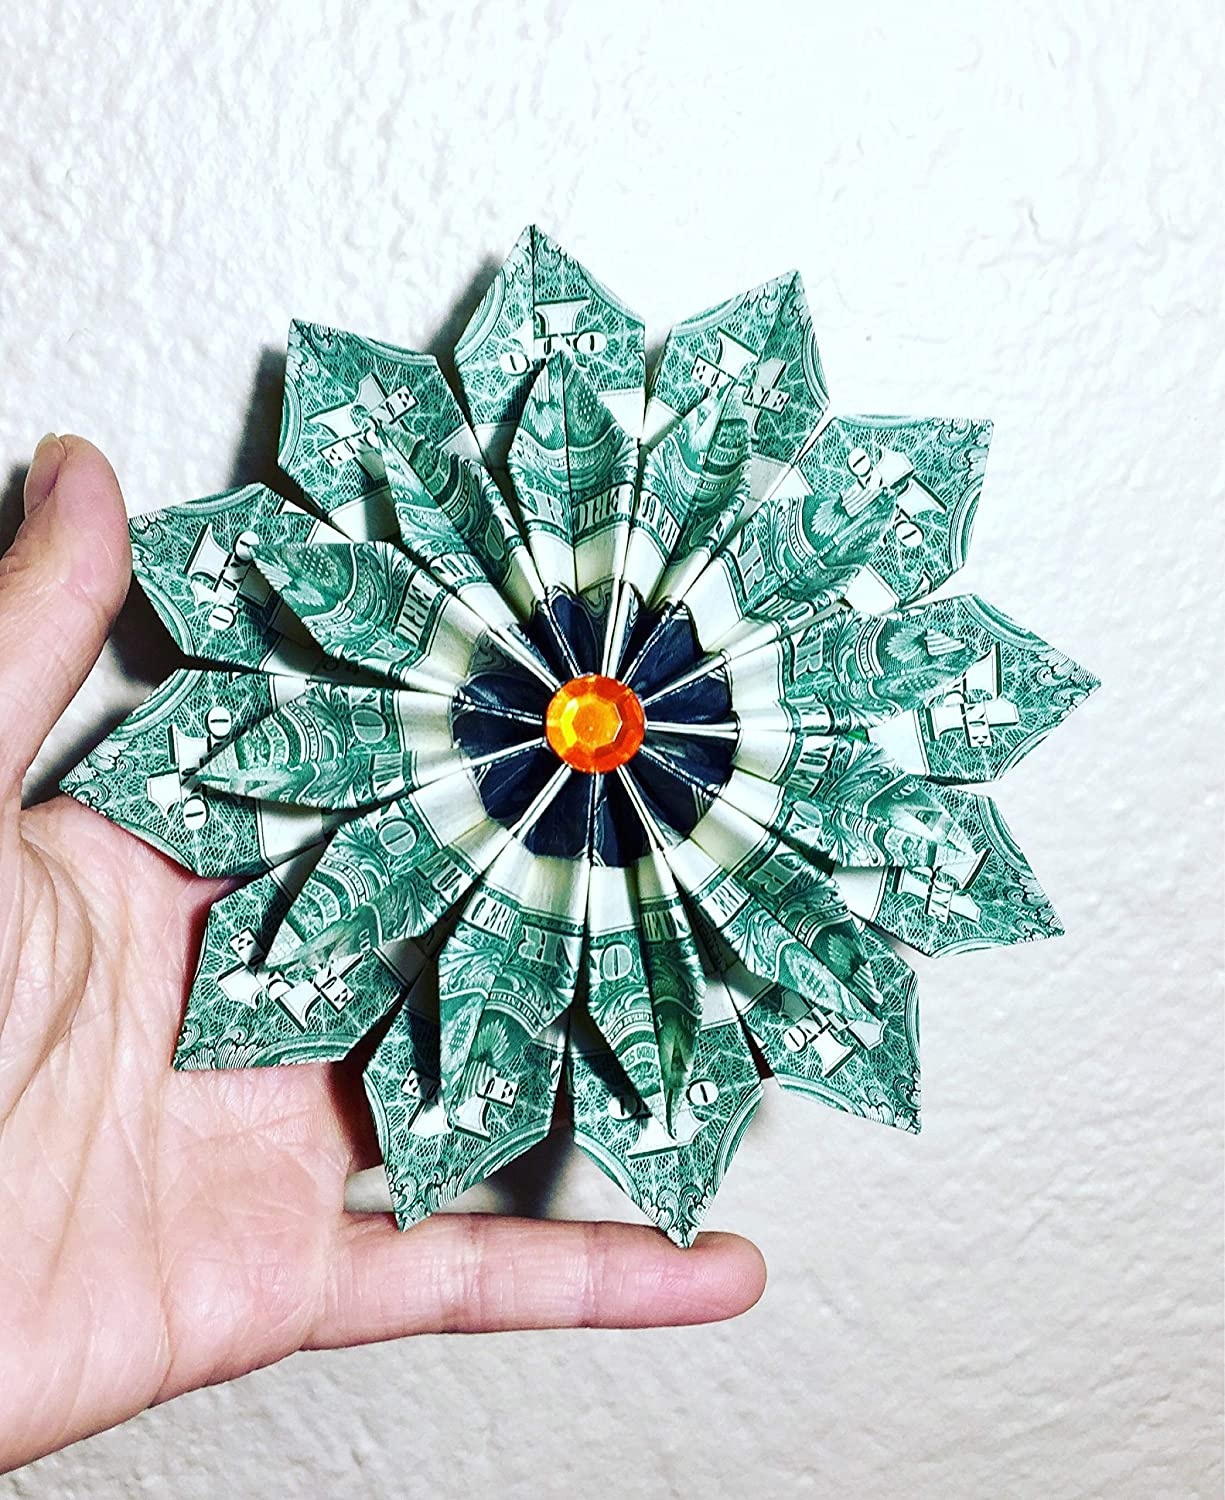 Money Origami, Flower Edition: 10 Different Ways to Fold a Dollar ... | 1500x1225